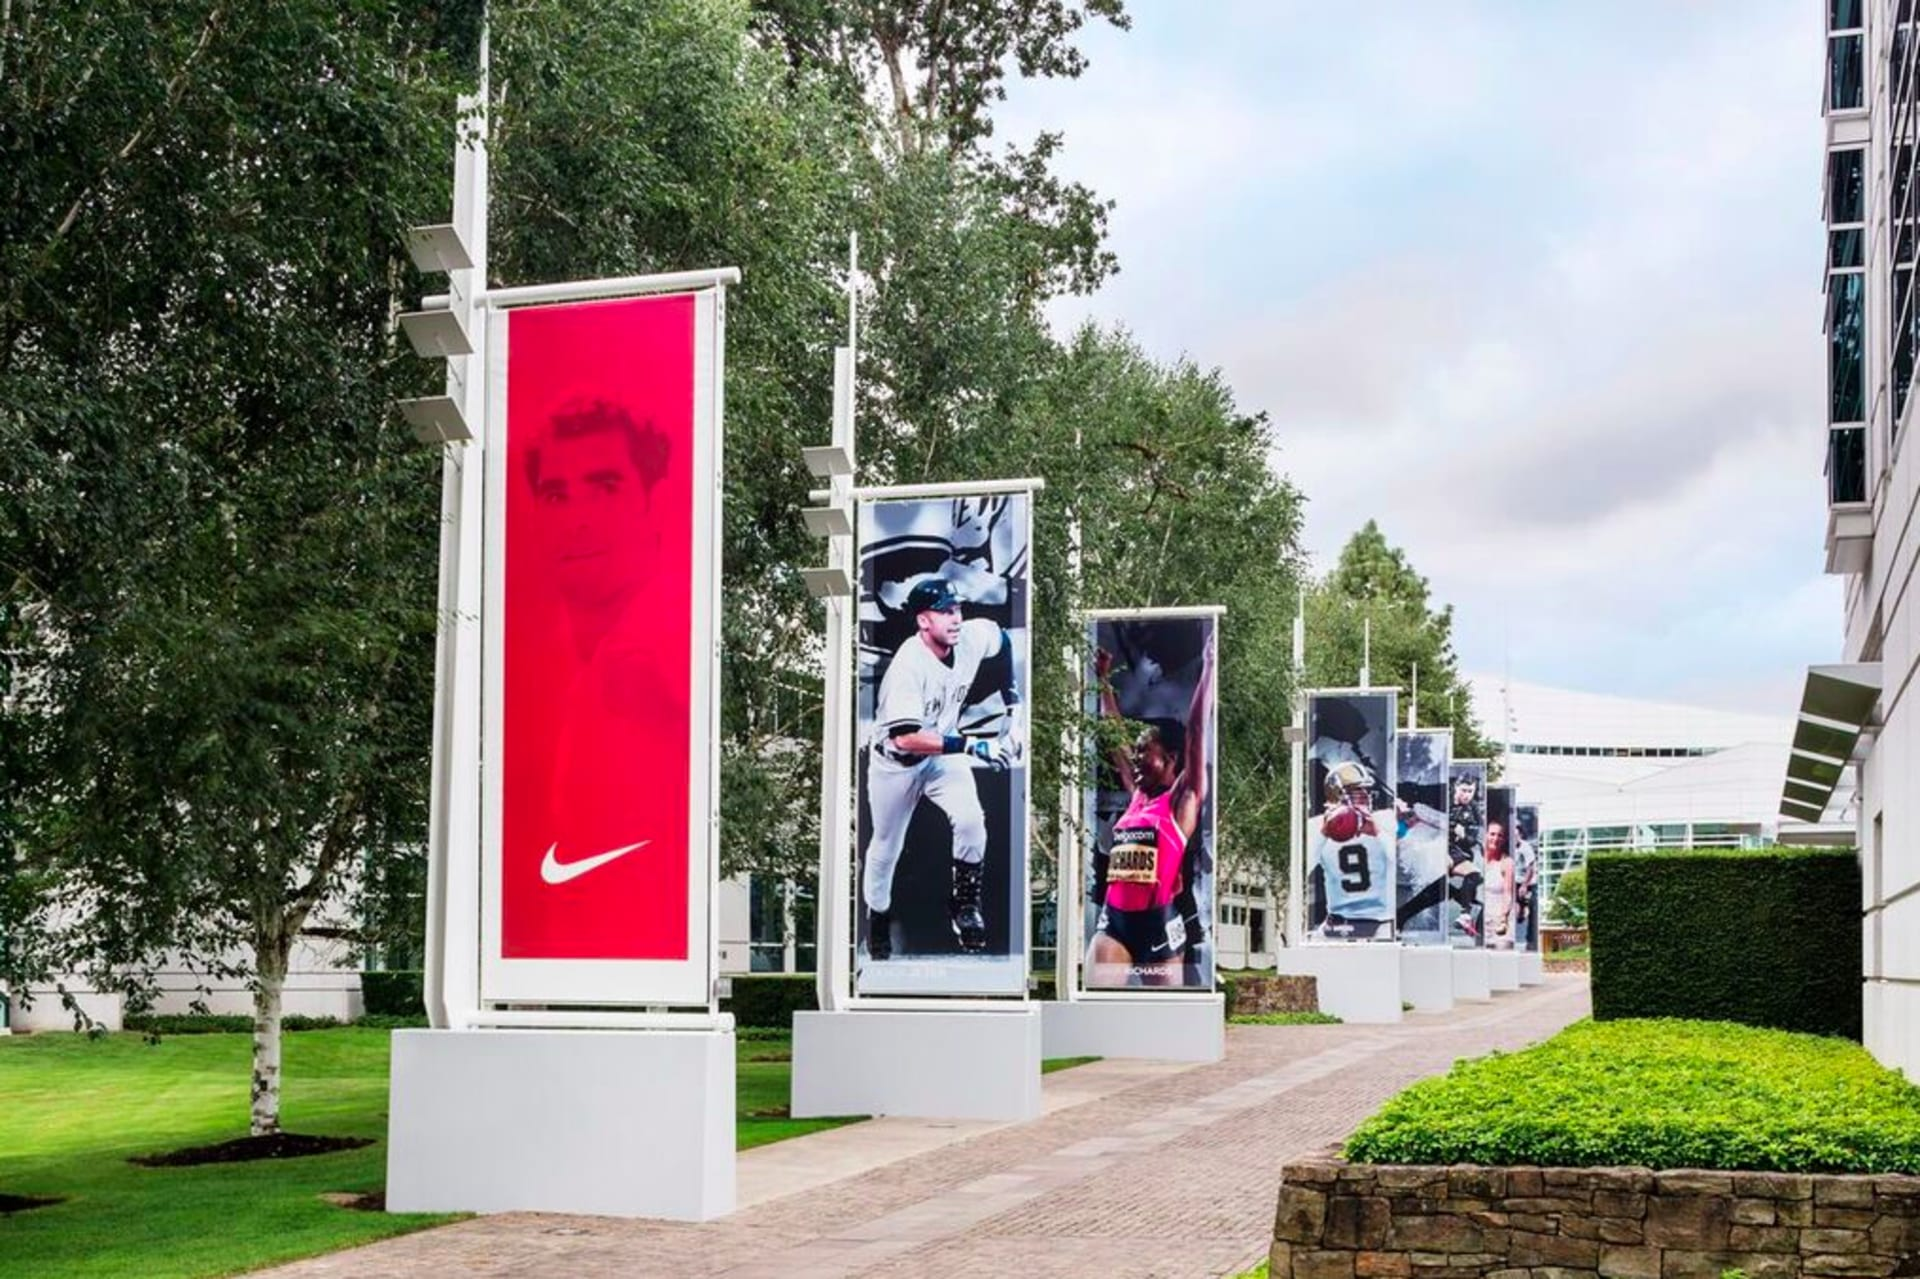 An In-Depth Look Inside Nike's Sprawling Oregon Headquarters